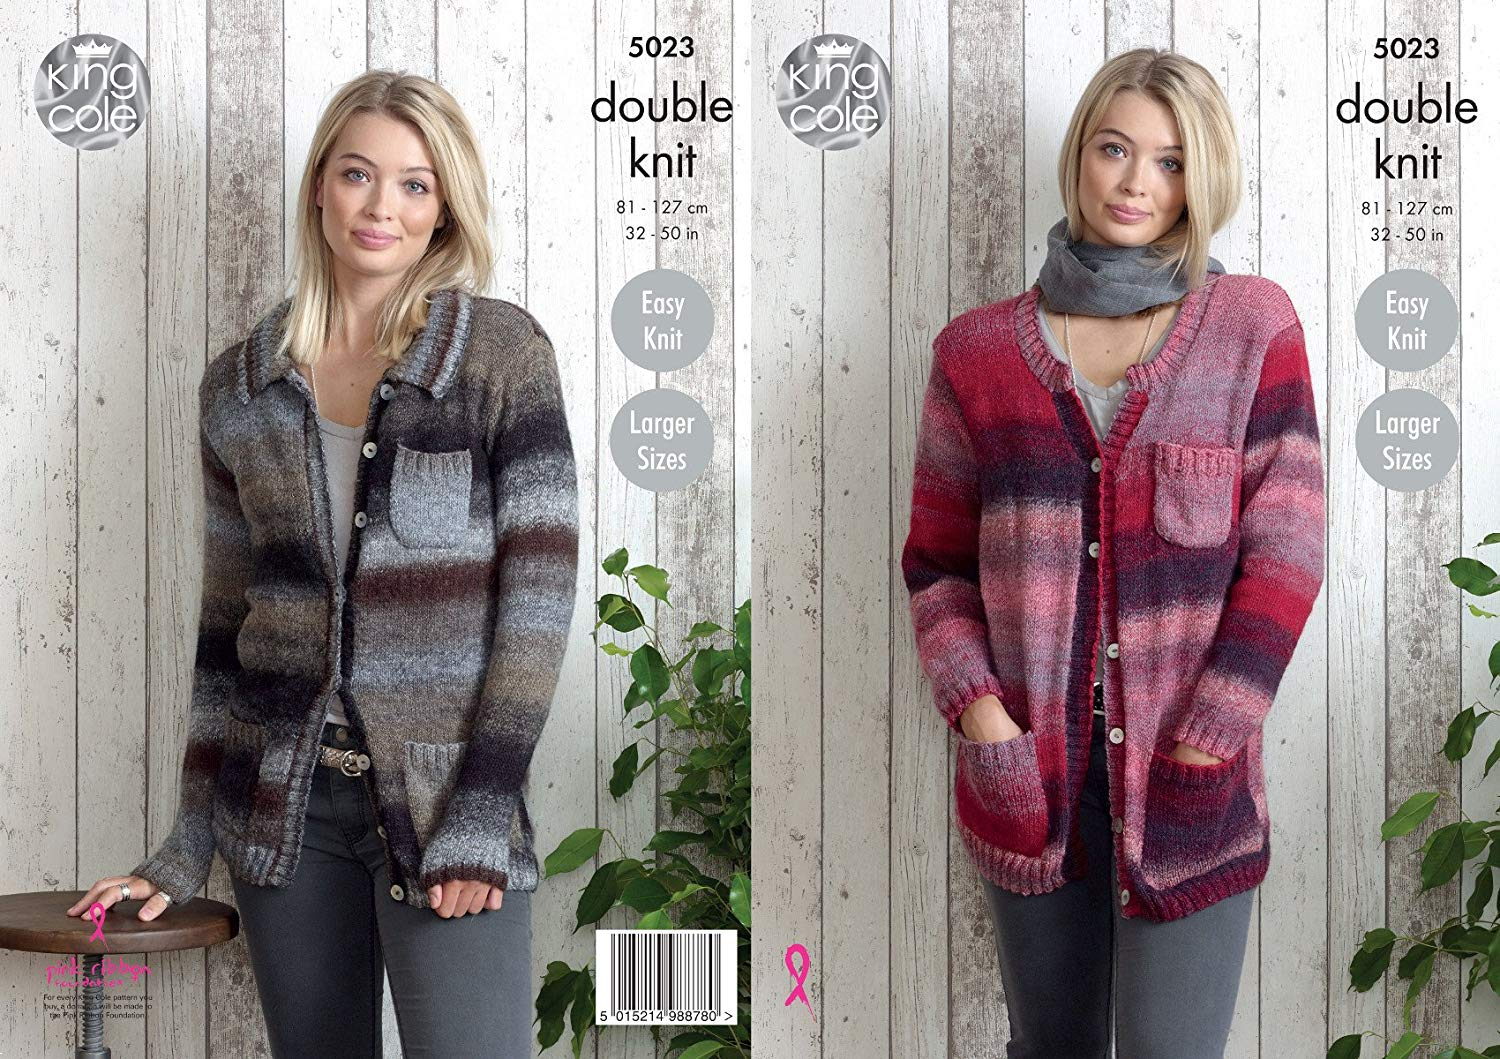 f2959e700d3e44 King Cole Ladies Double Knitting Pattern Easy Knit Split Neck or Collar  Cardigan (5023)